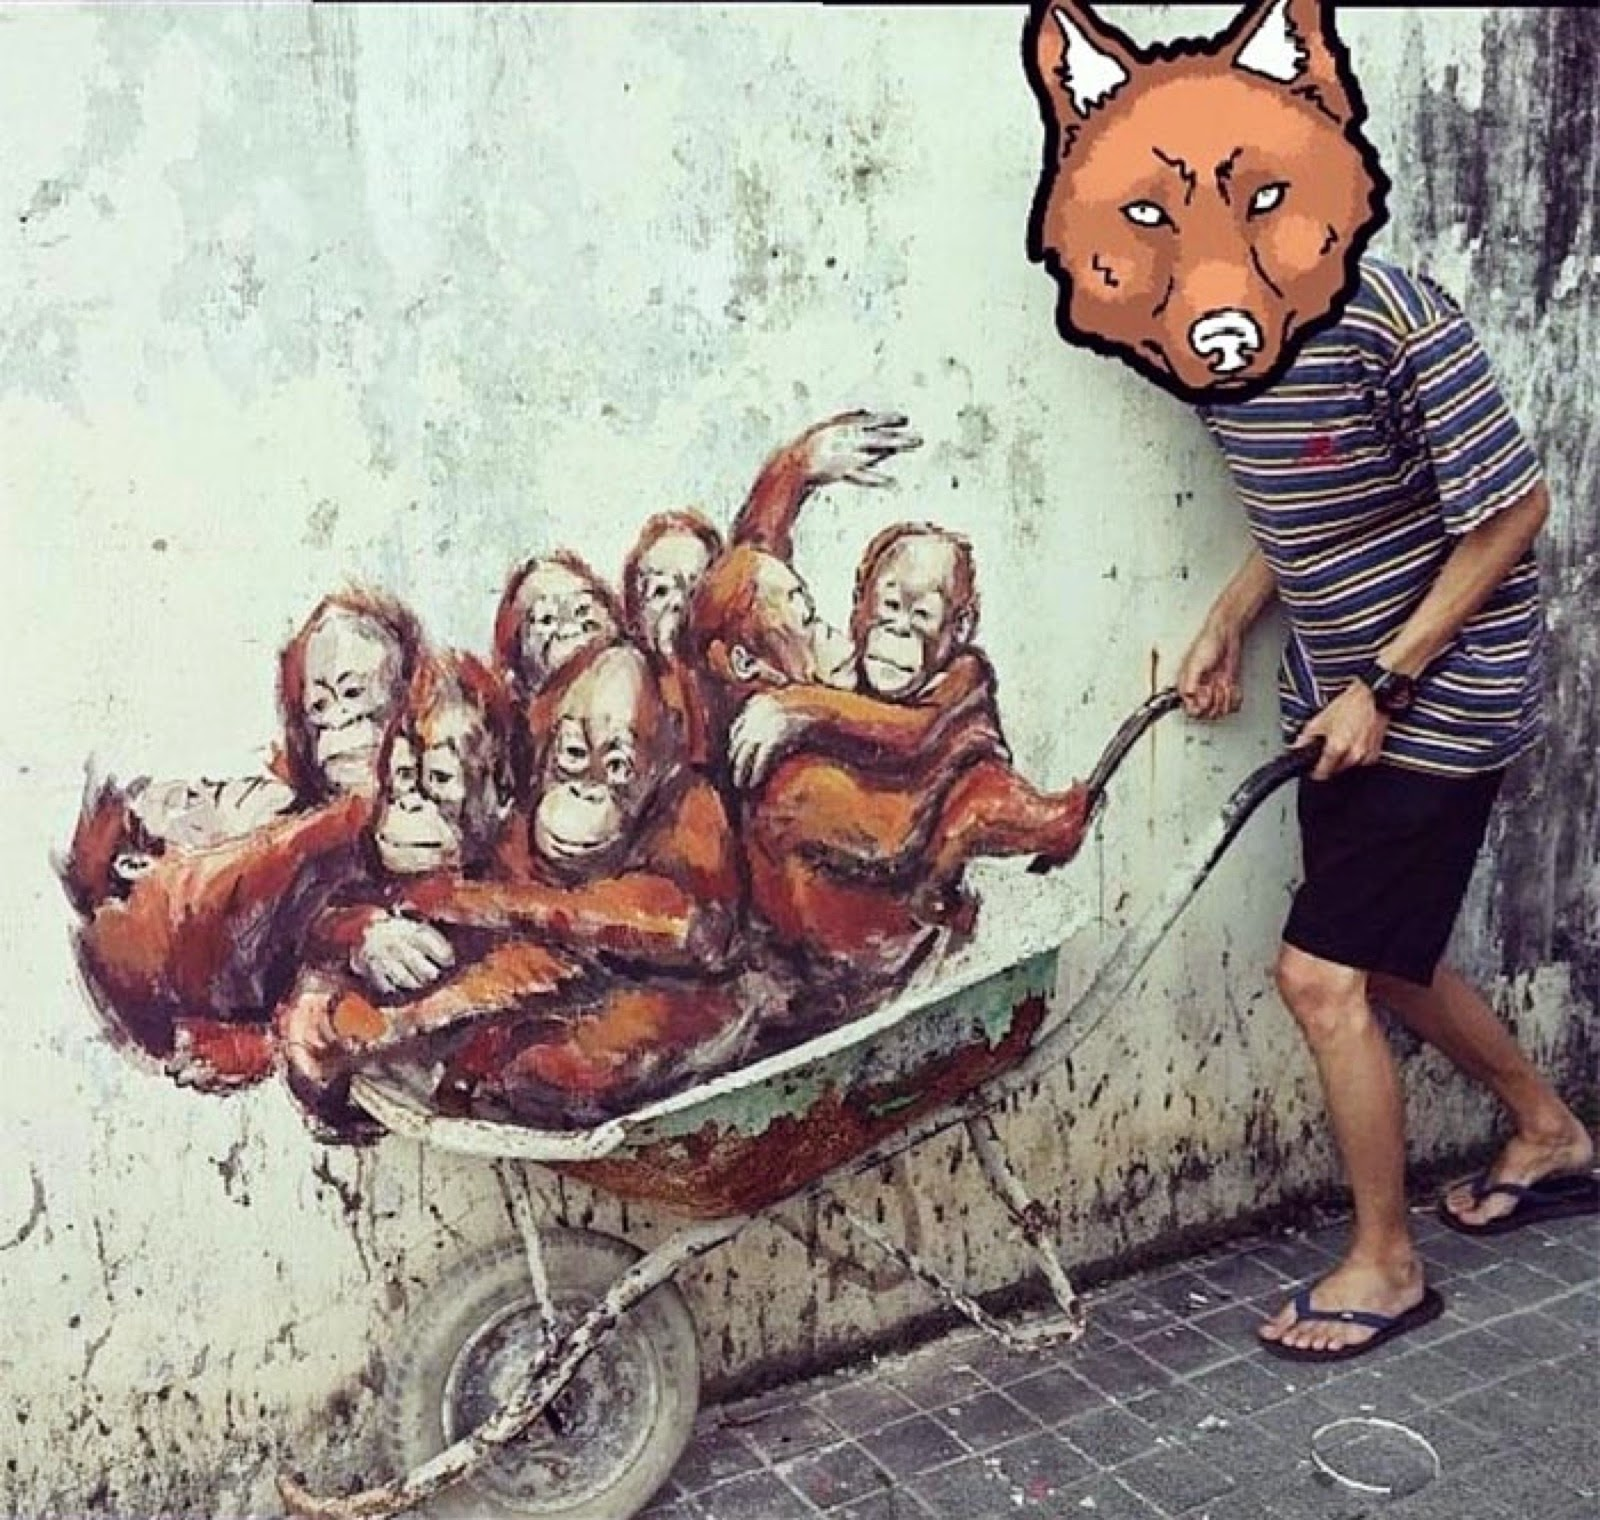 While we last heard from him last week in Italy (covered), Ernest Zacharevic is now back in Malaysia where he spent his Sunday afternoon working on a new series of pieces around Kuching.